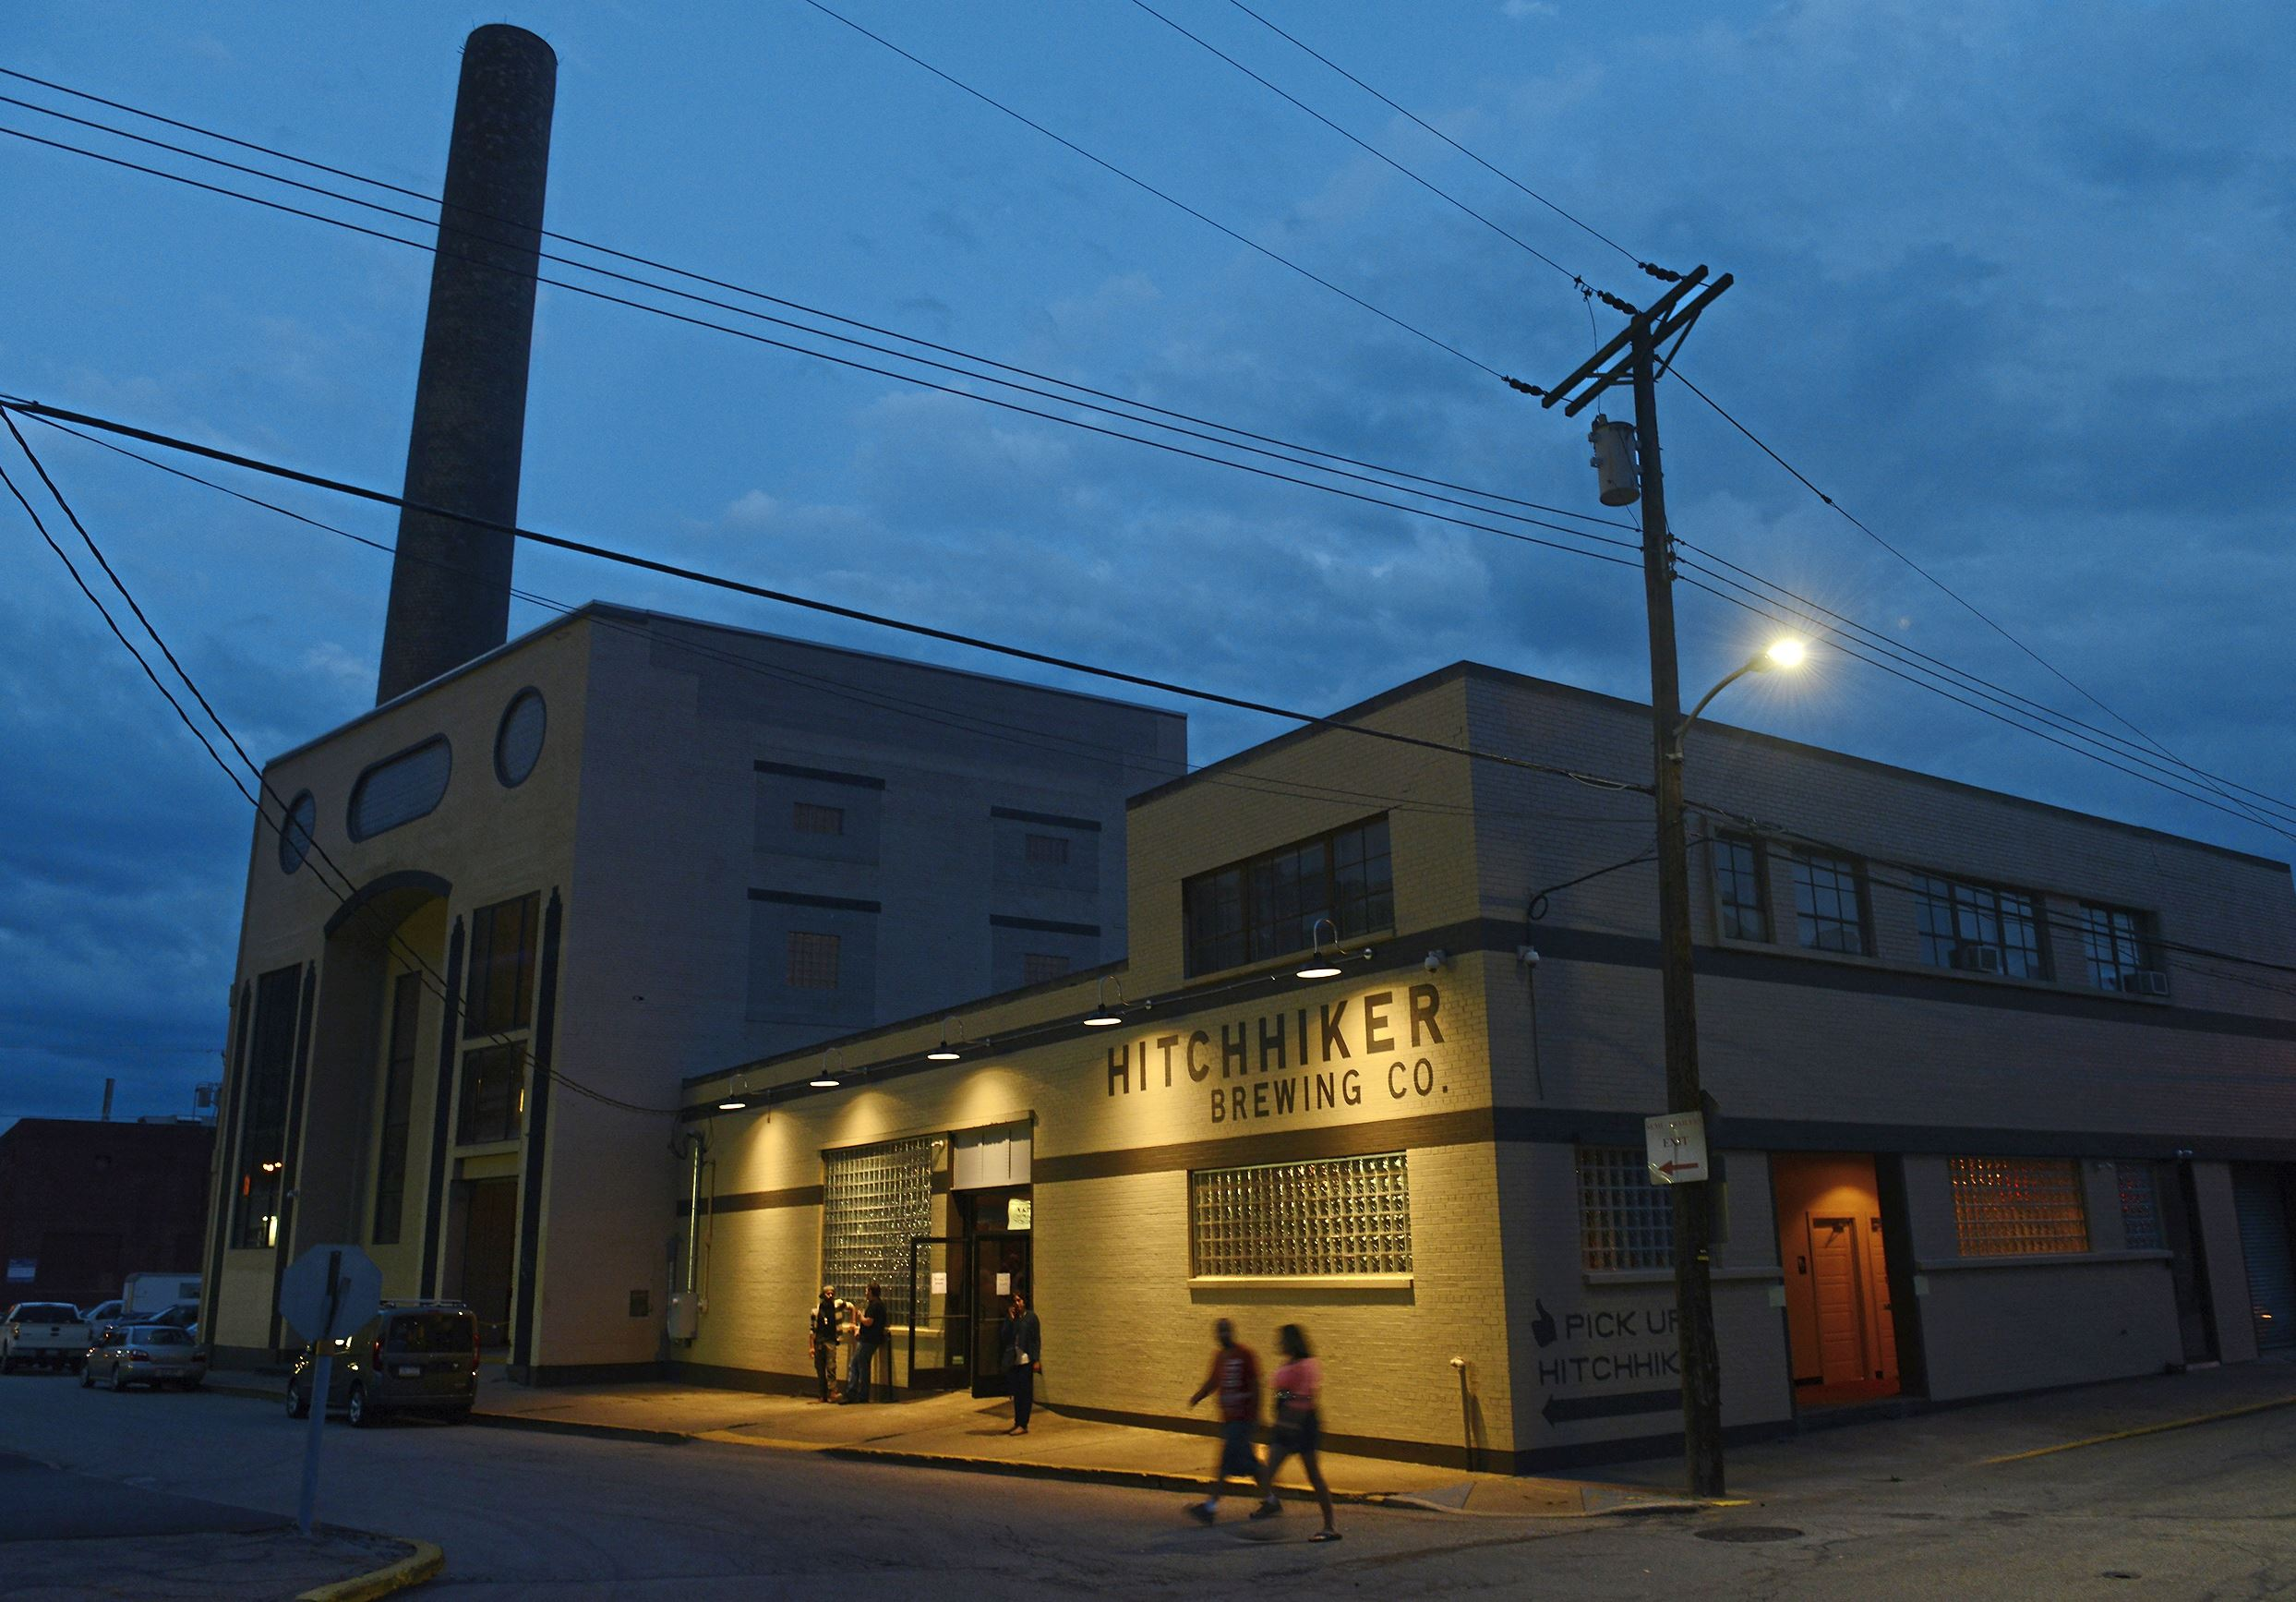 20170906rldHitchiker05-3 Hitchhiker Brewing Company celebrates the opening of its' second location with a soft launch Wednesday in Sharpsburg.